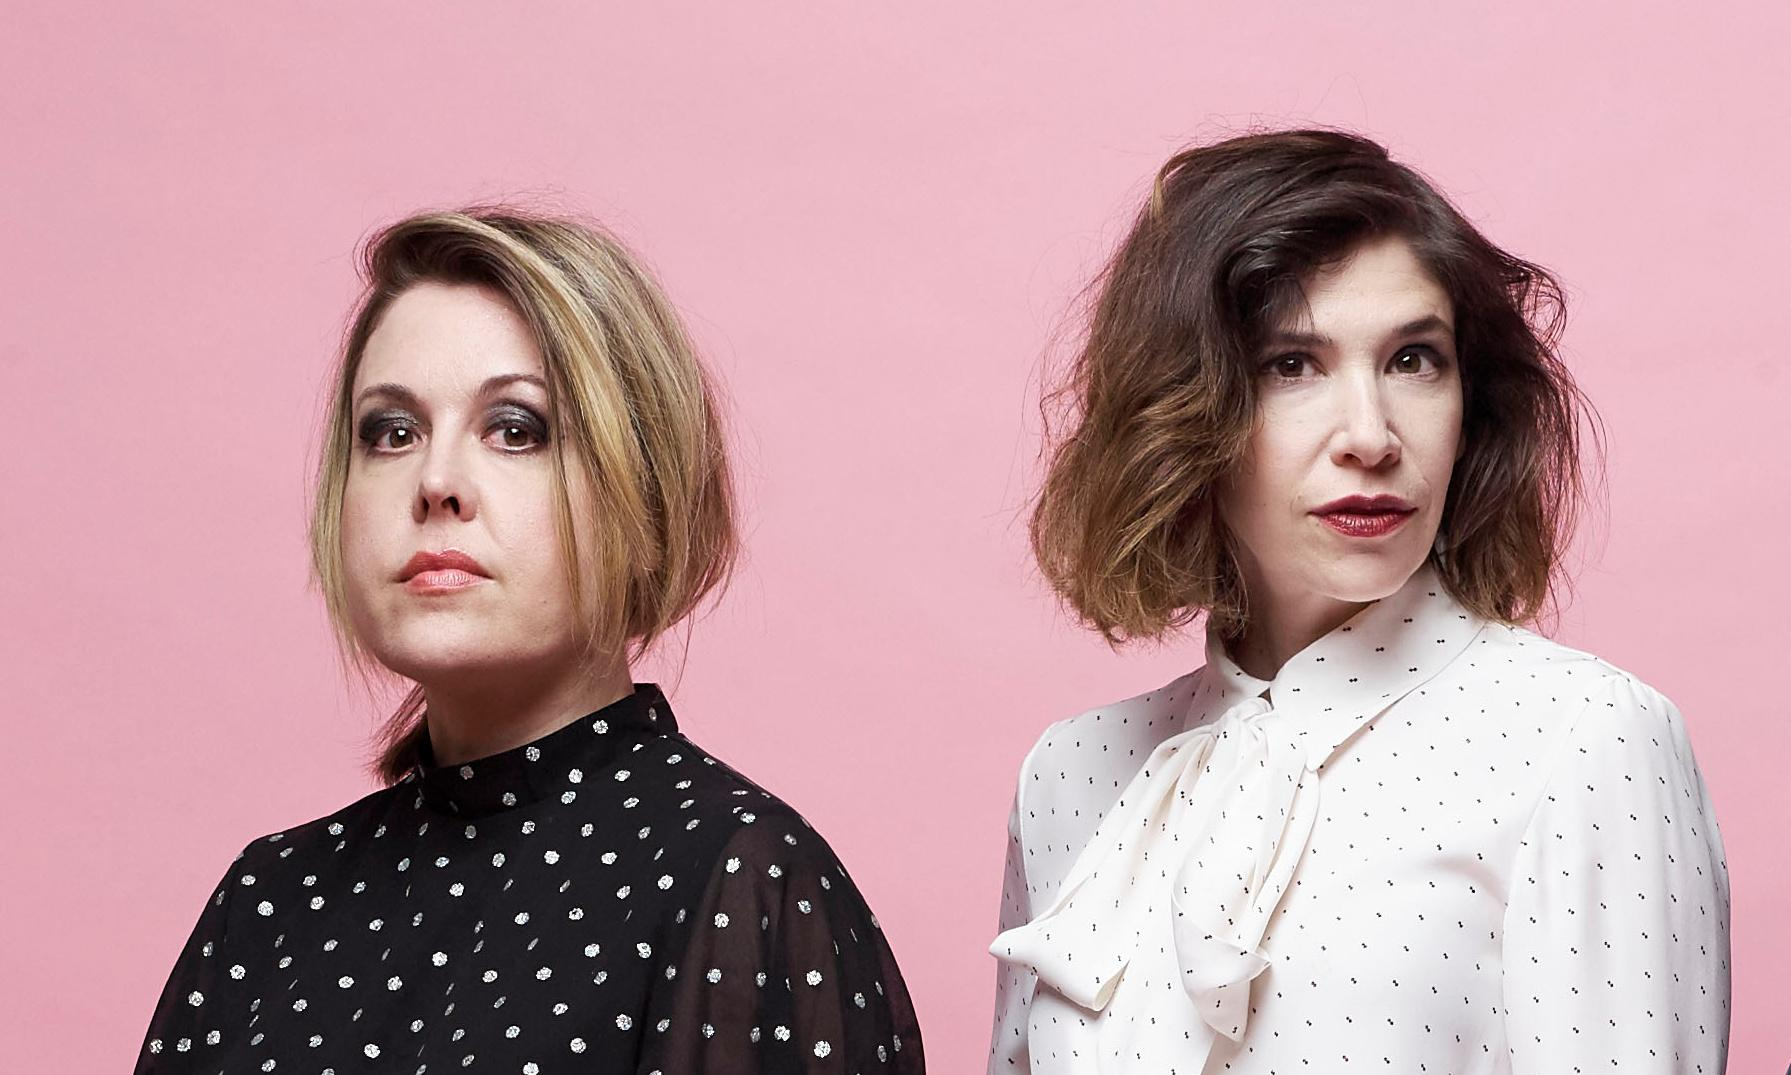 Sleater-Kinney: The Center Won't Hold review – trying too hard?